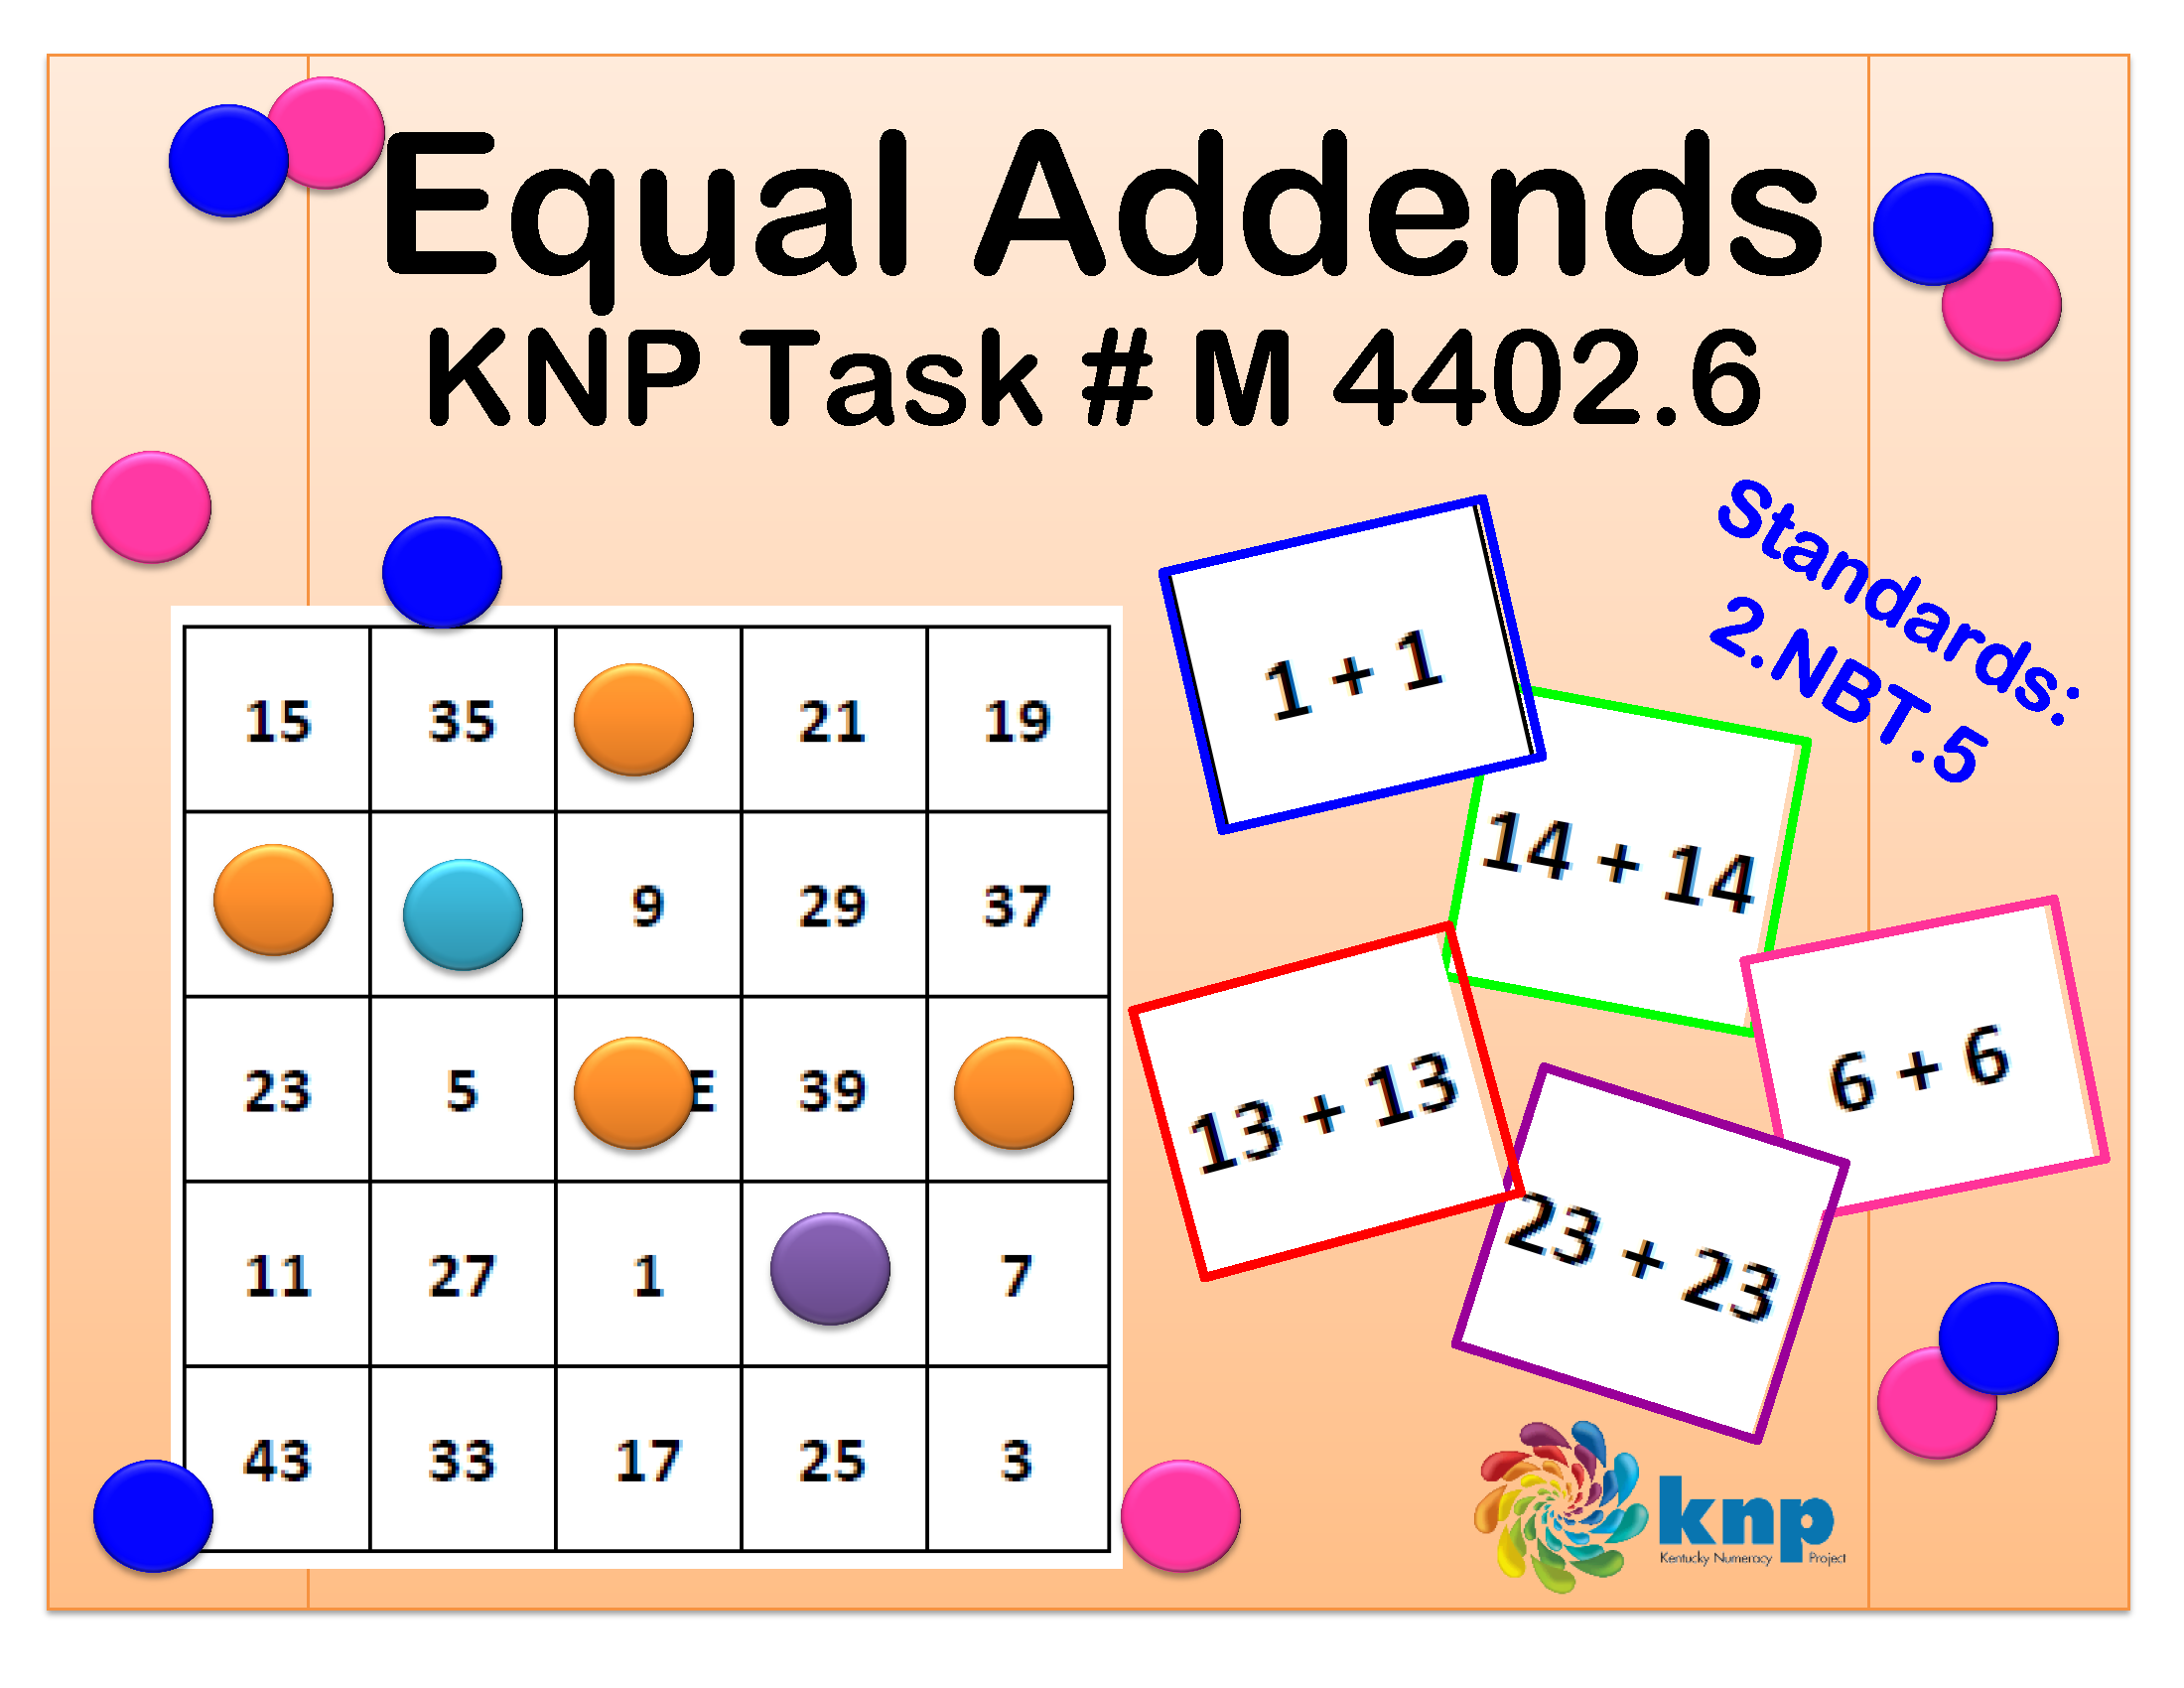 Equal Addends